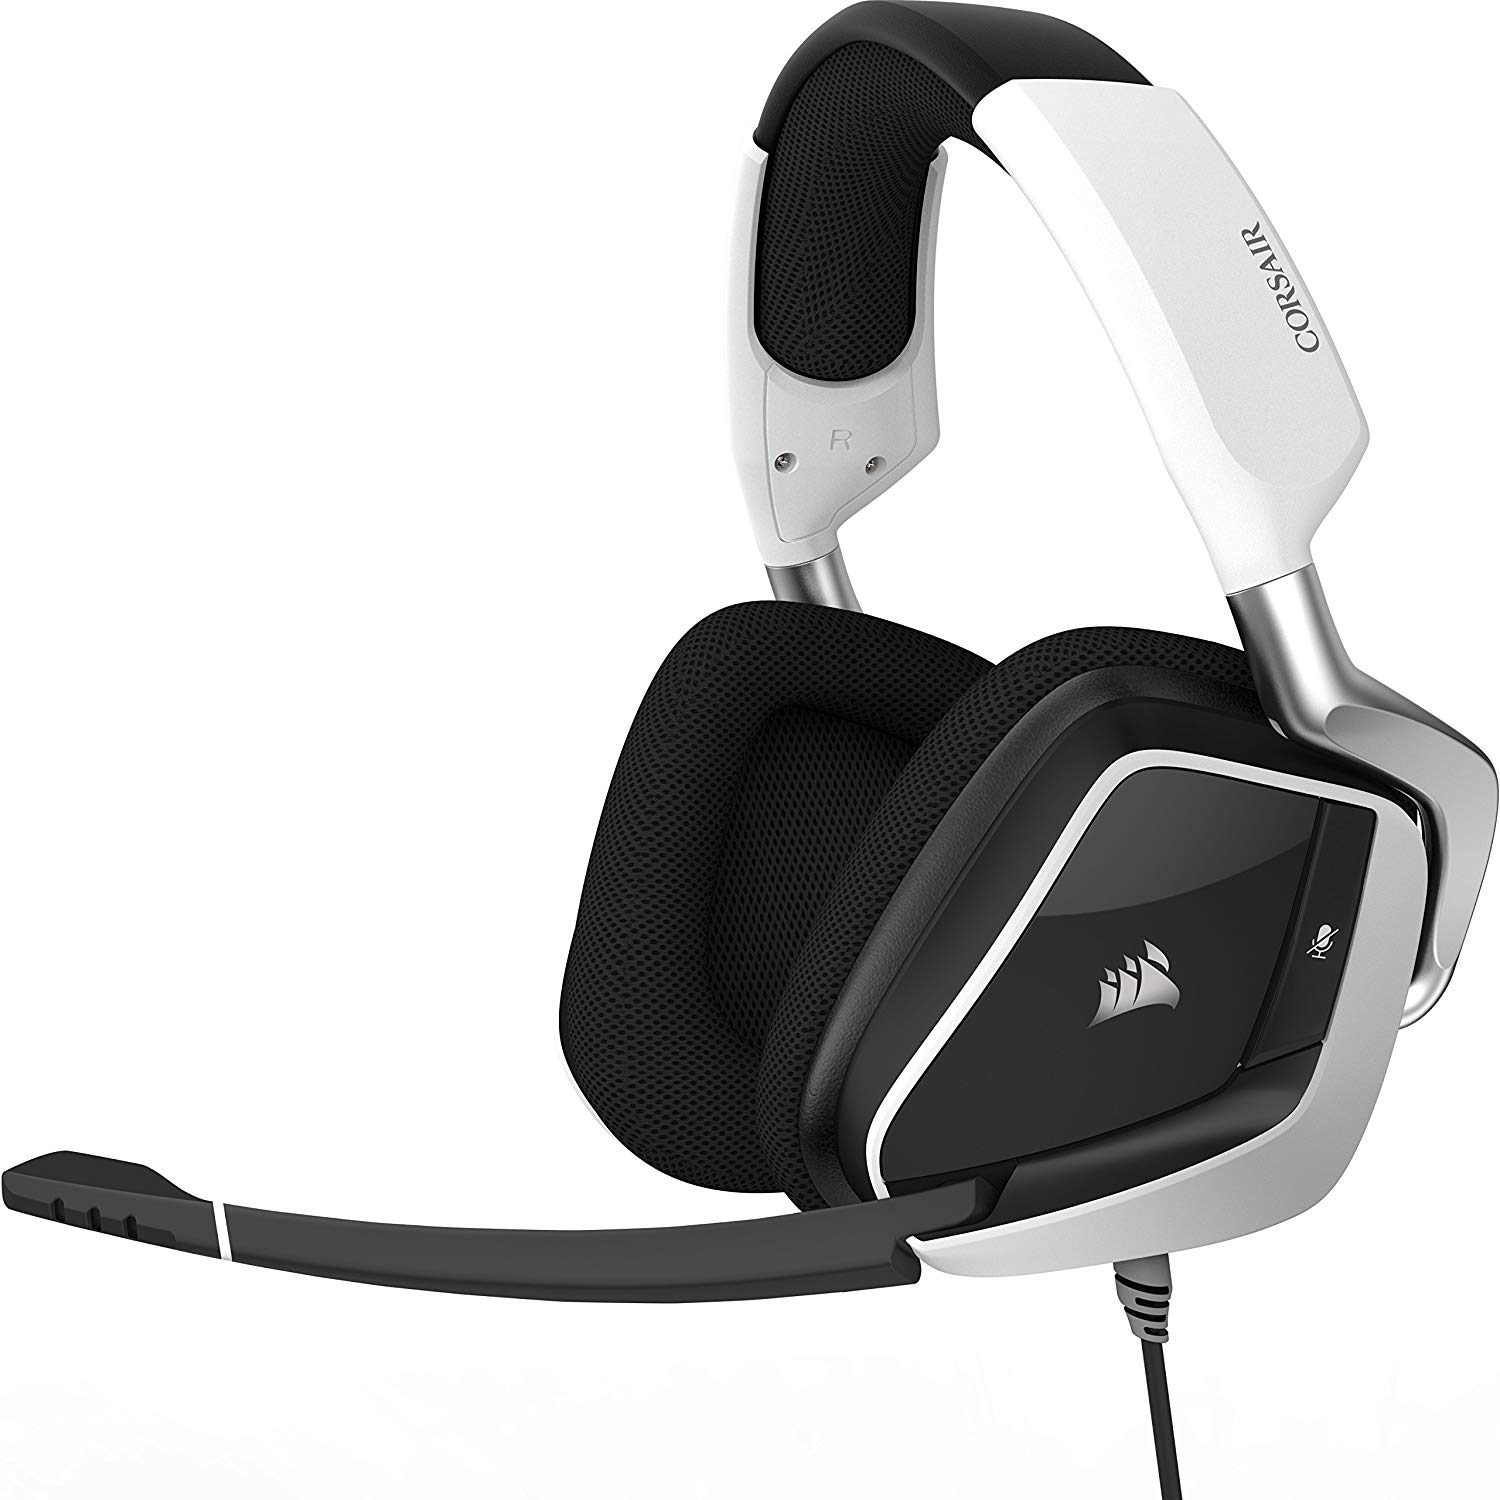 Corsair Void Pro RGB USB - Auriculares Gaming (PC, USB, Dolby 7.1) Color Blanco